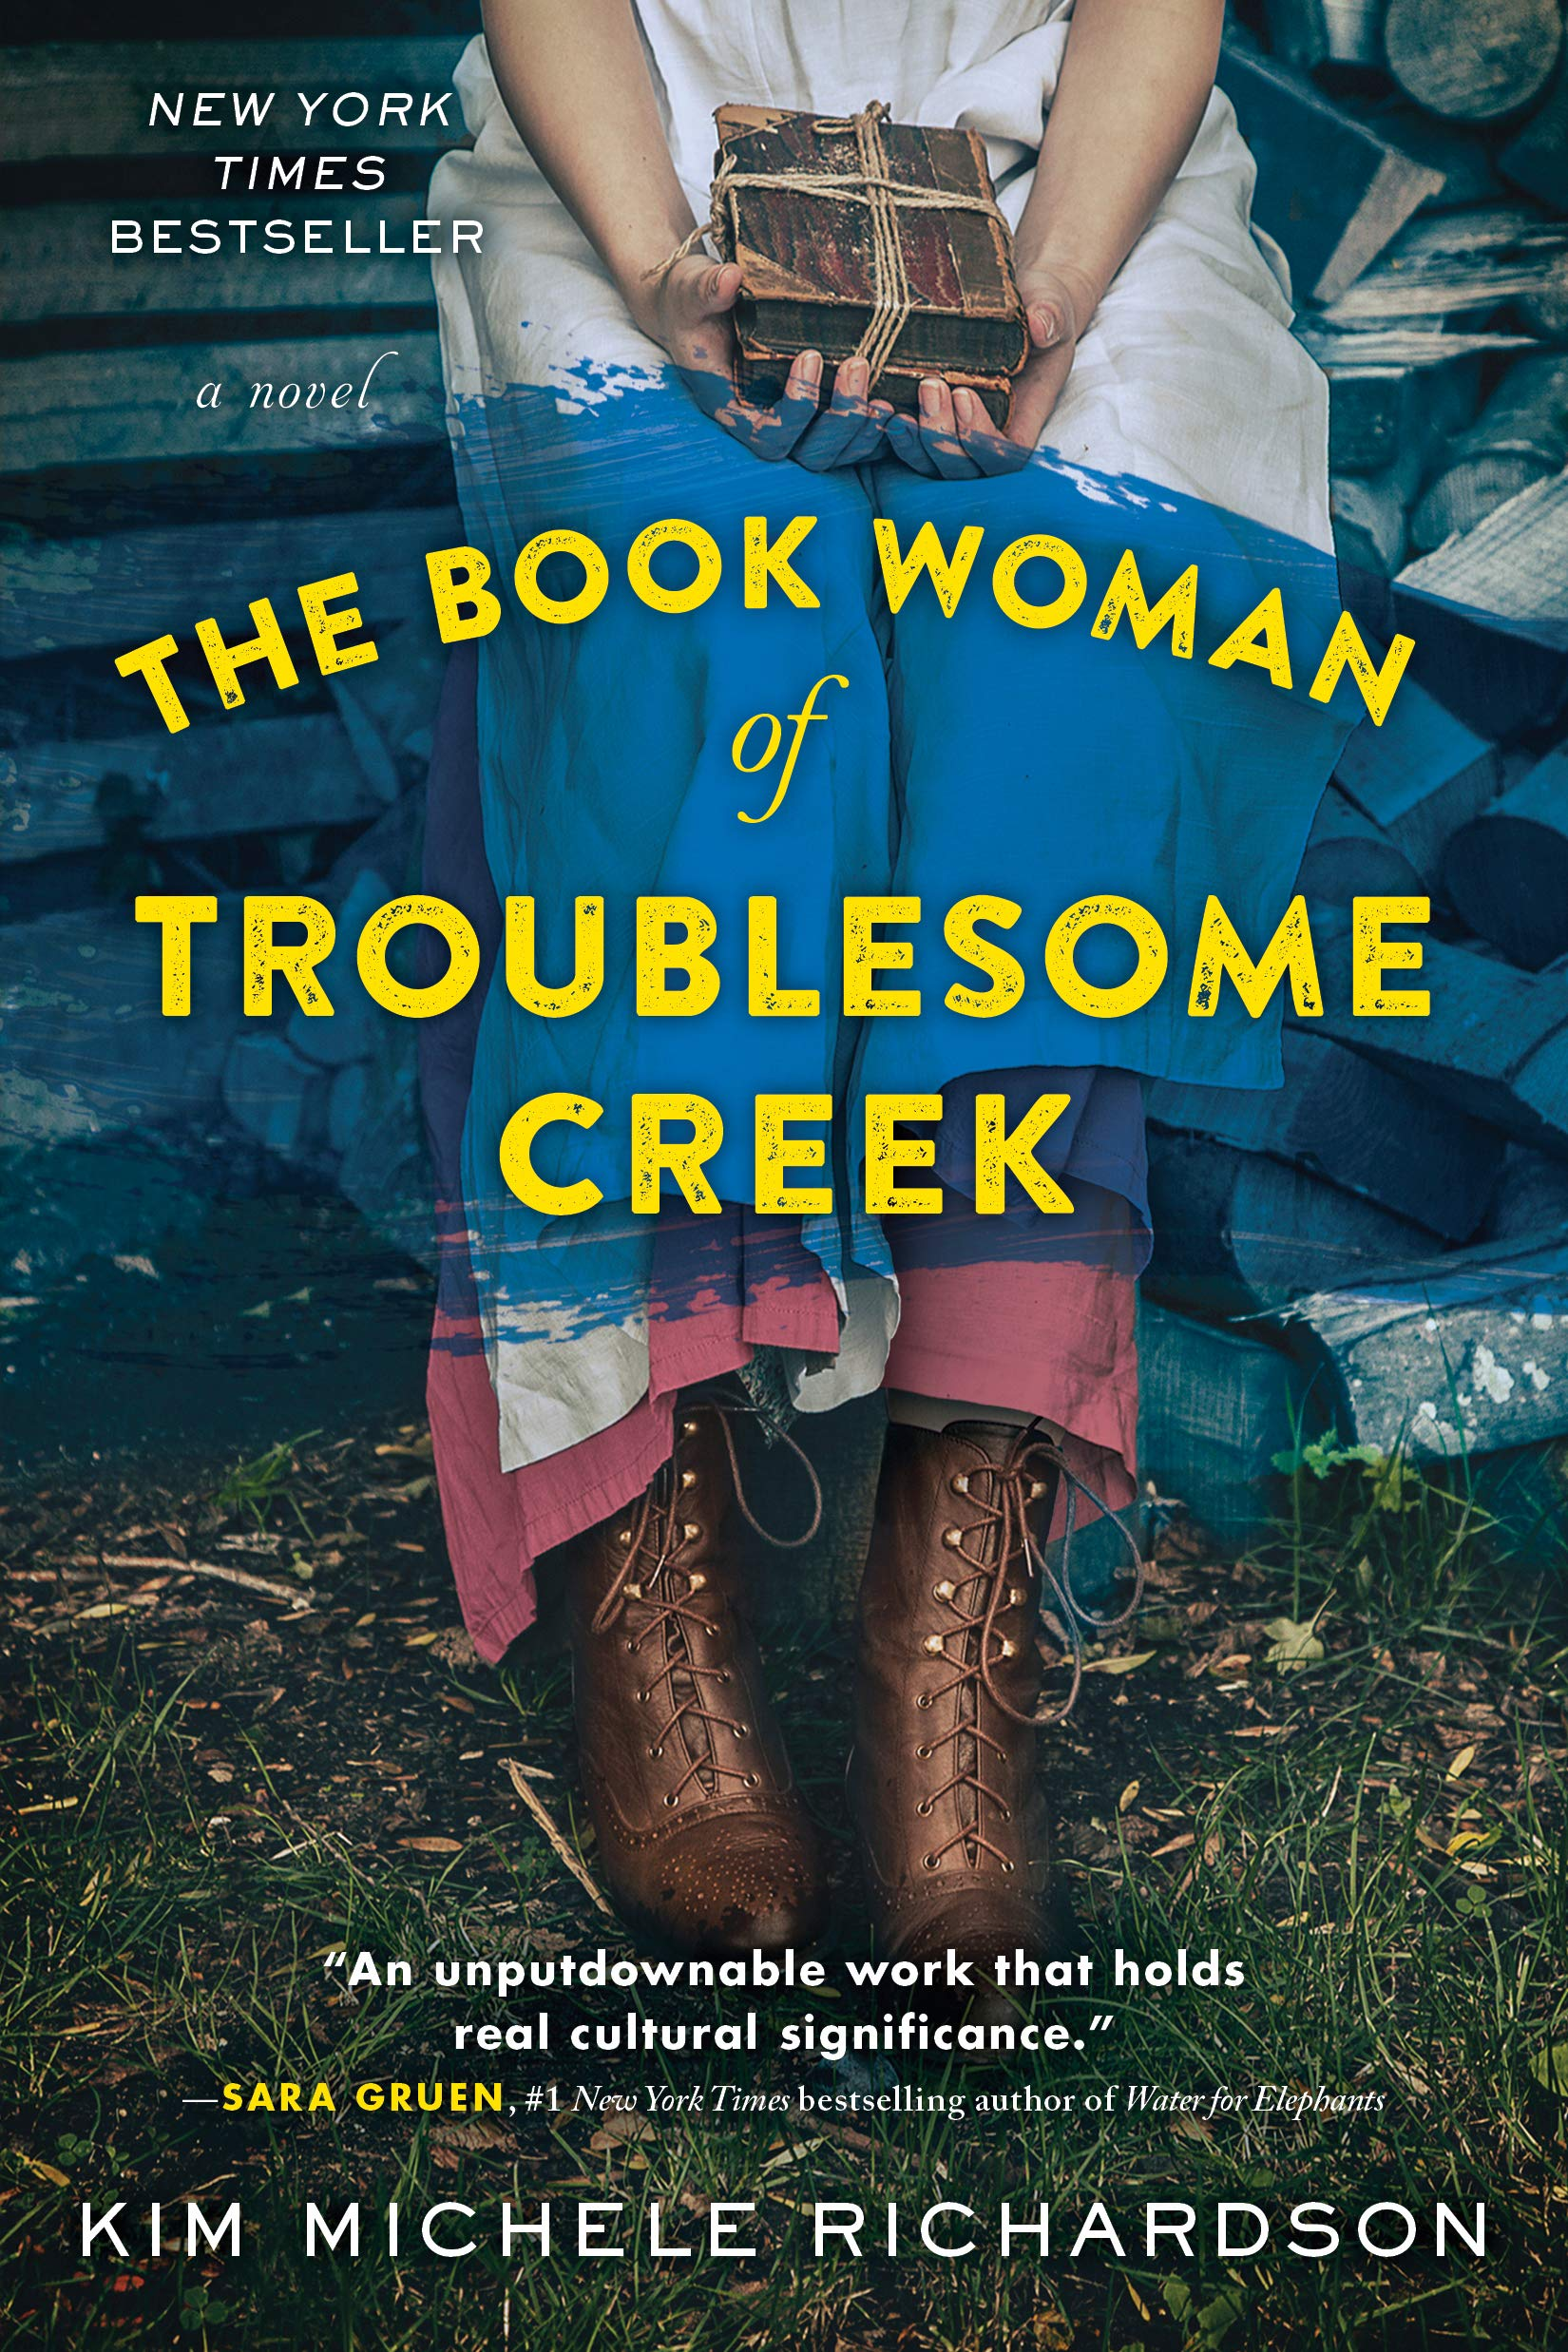 Book Discussion: The Book Woman of Troublesome Creek